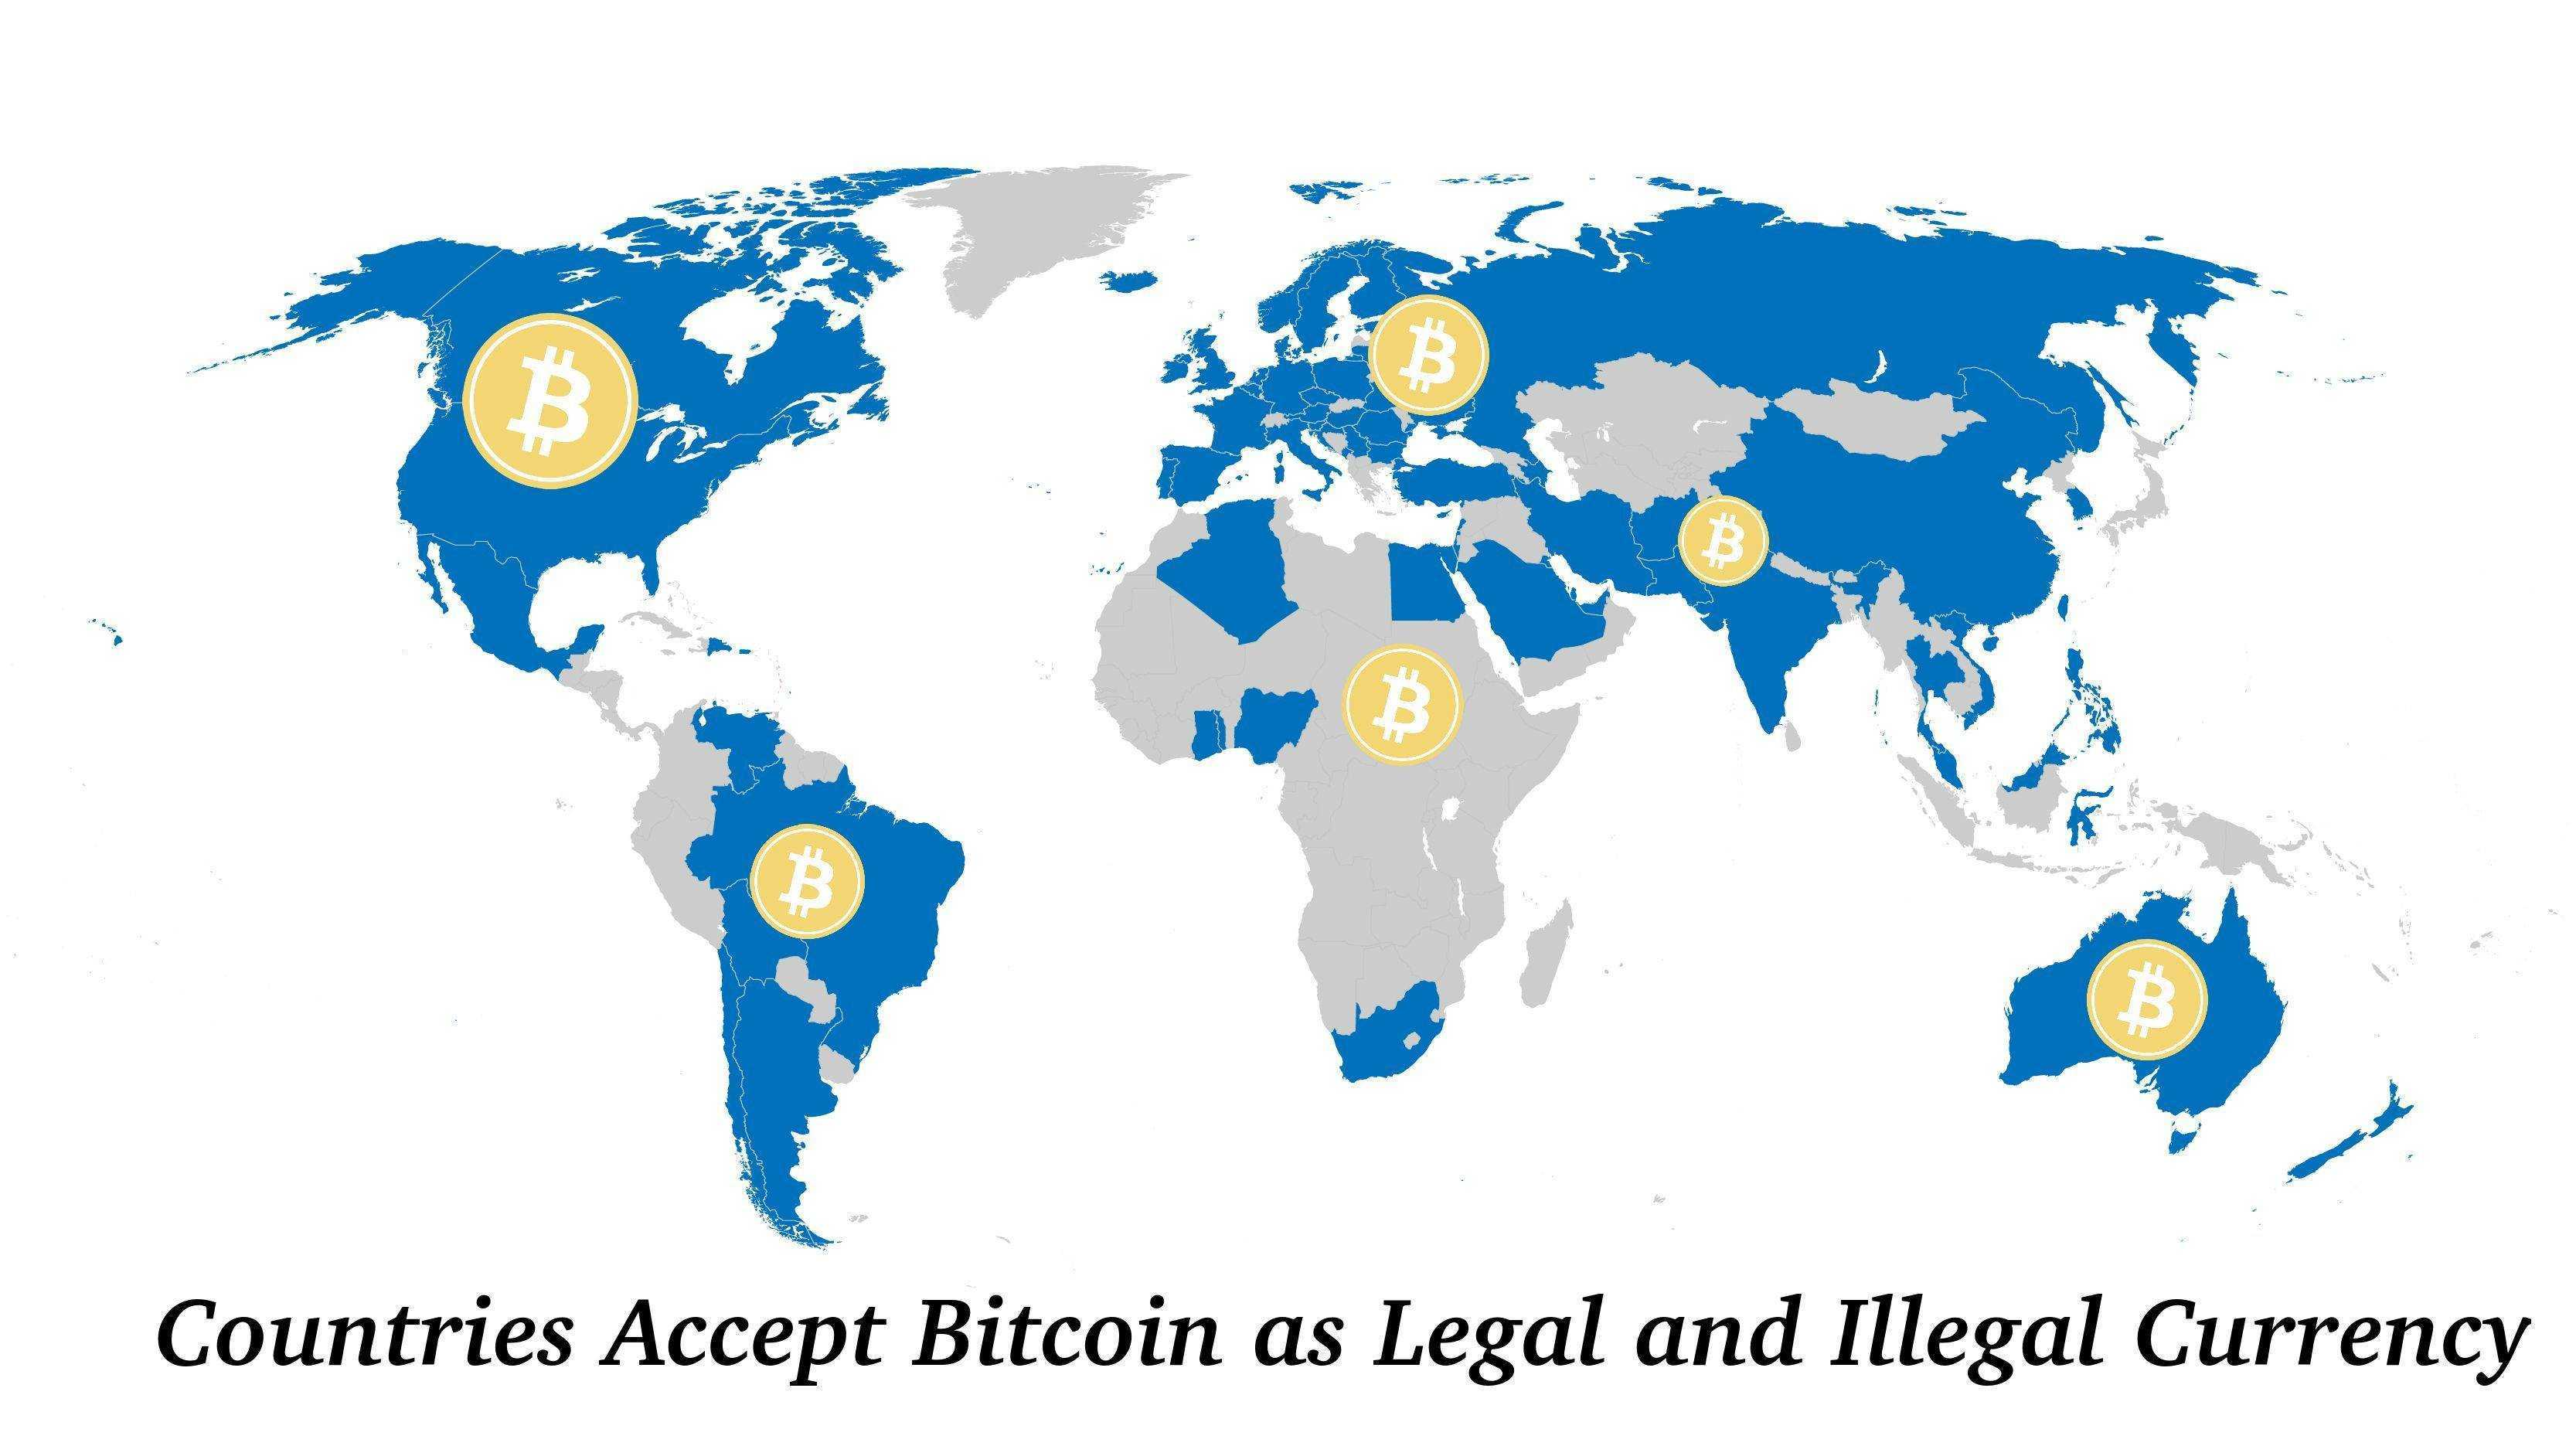 Countries Where Accept Bitcoin as Legal and Illegal